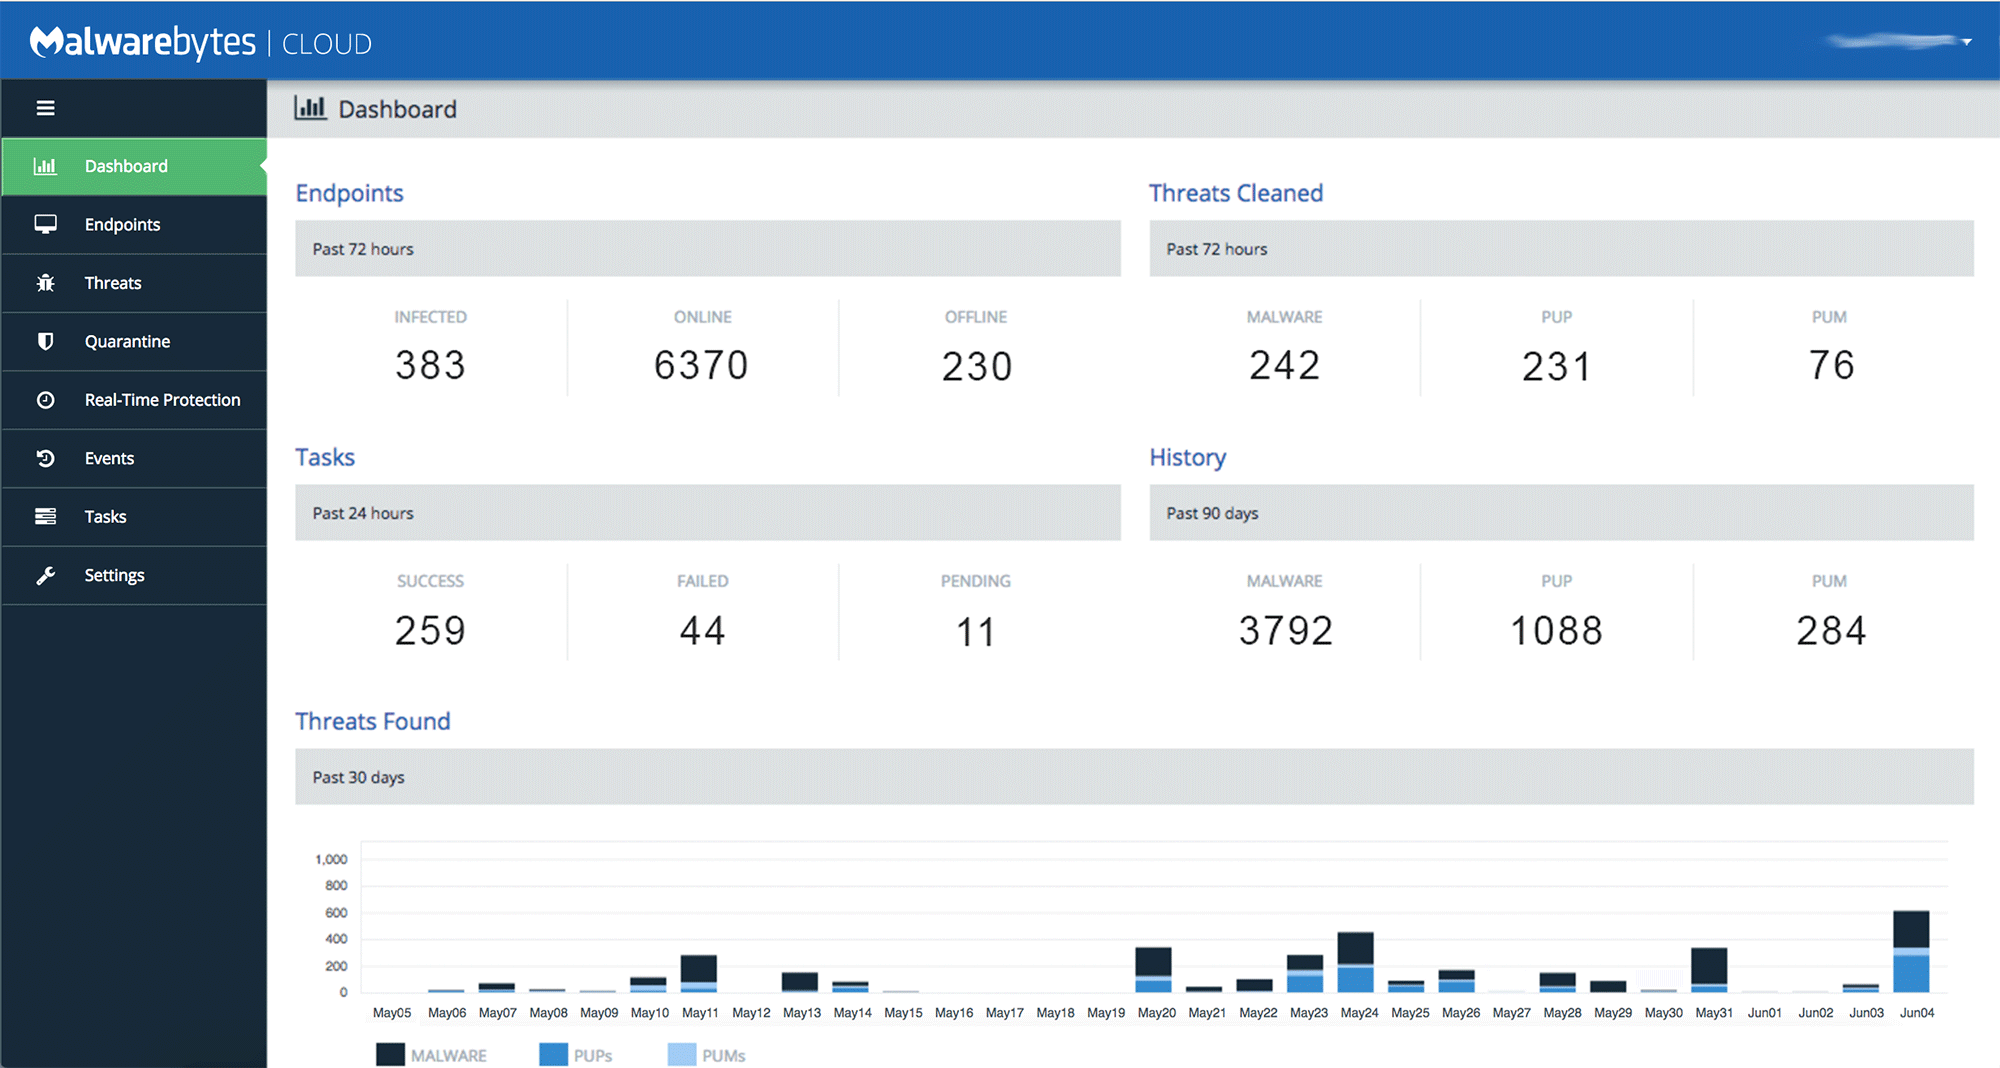 Malwarebytes cloud platform - Dashboard